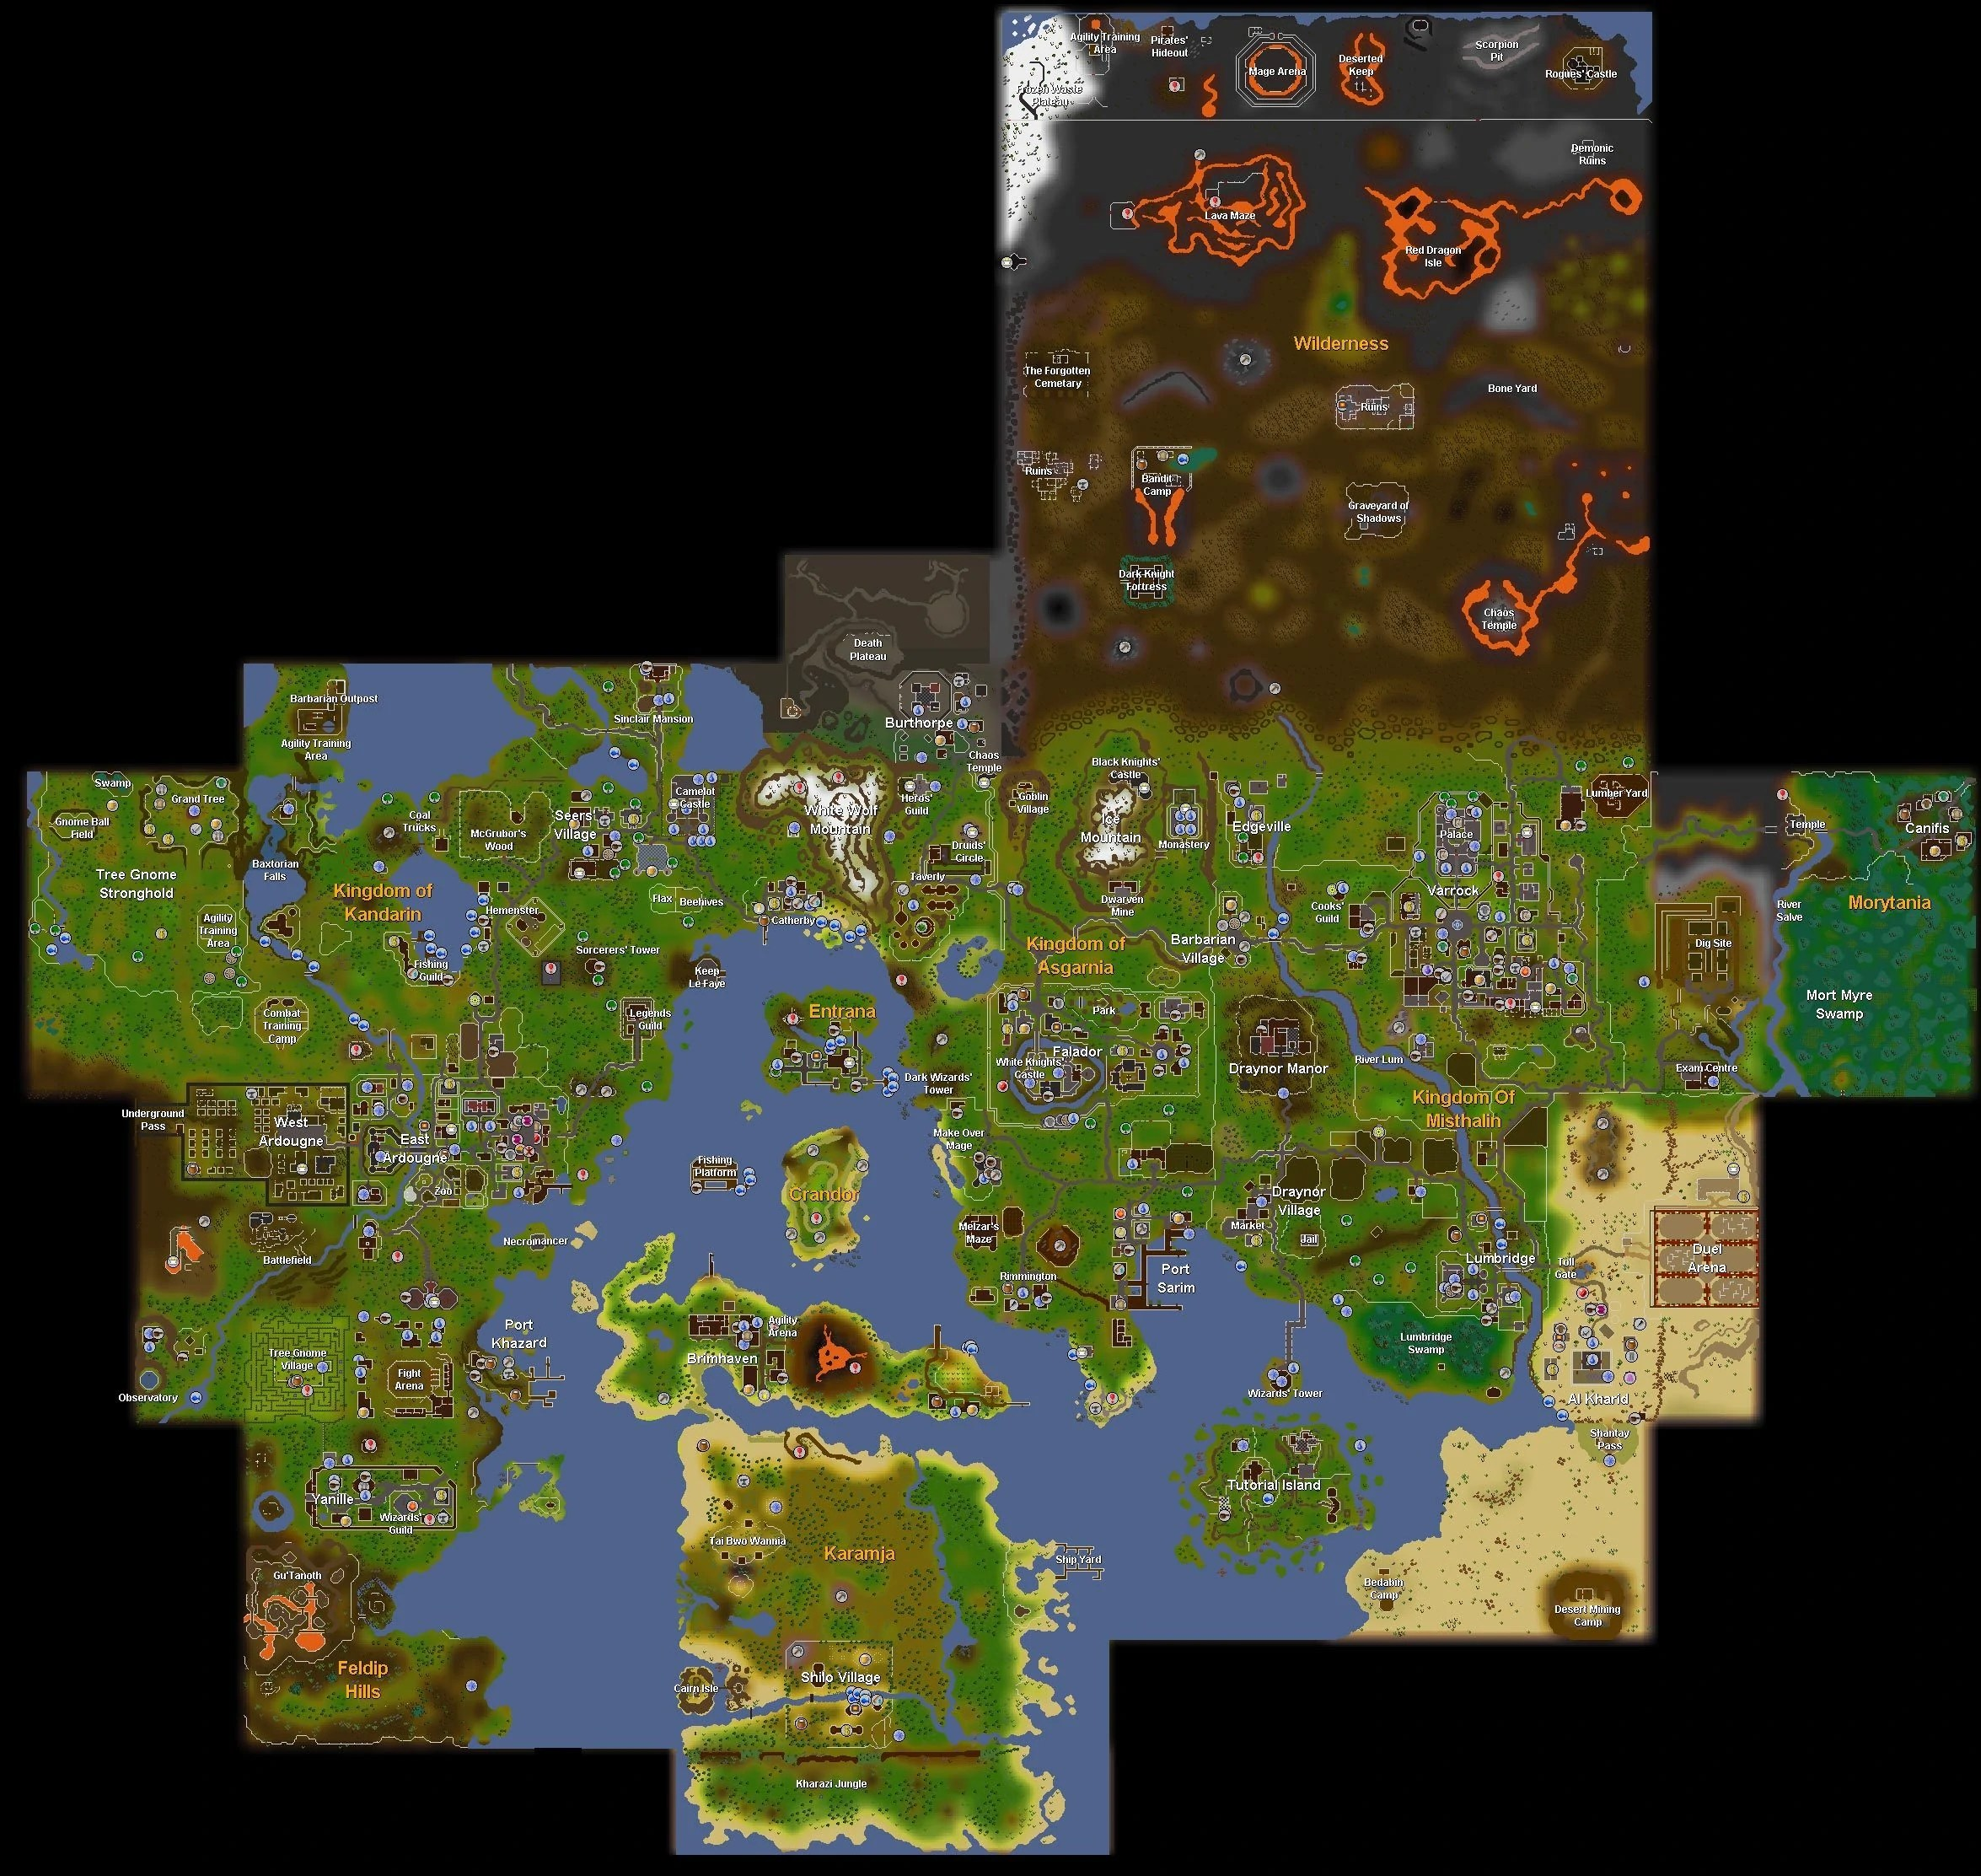 20+ Runescape Brimhaven Dungeon Map Pictures and Ideas on Meta Networks